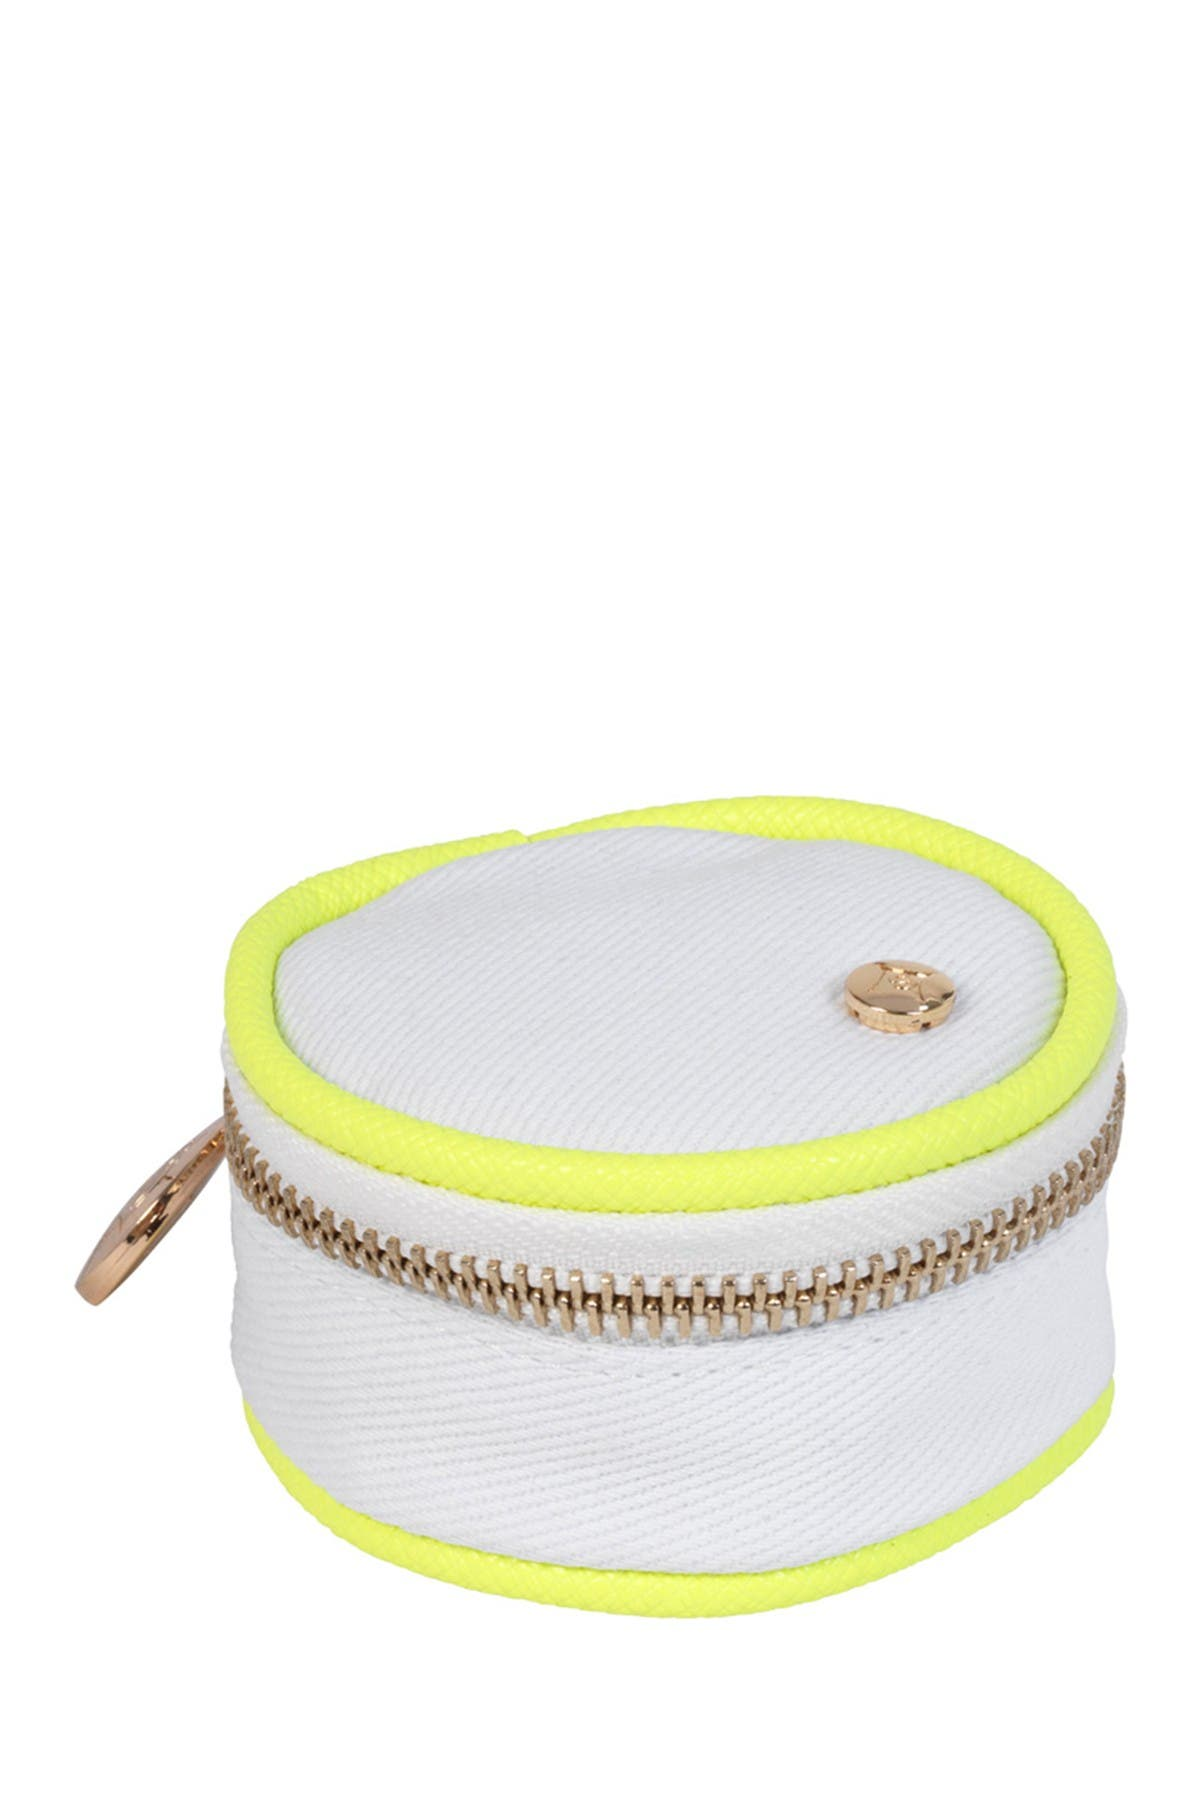 Stephanie Johnson Key West Angie Small Round Accessories Case - Neon Yellow